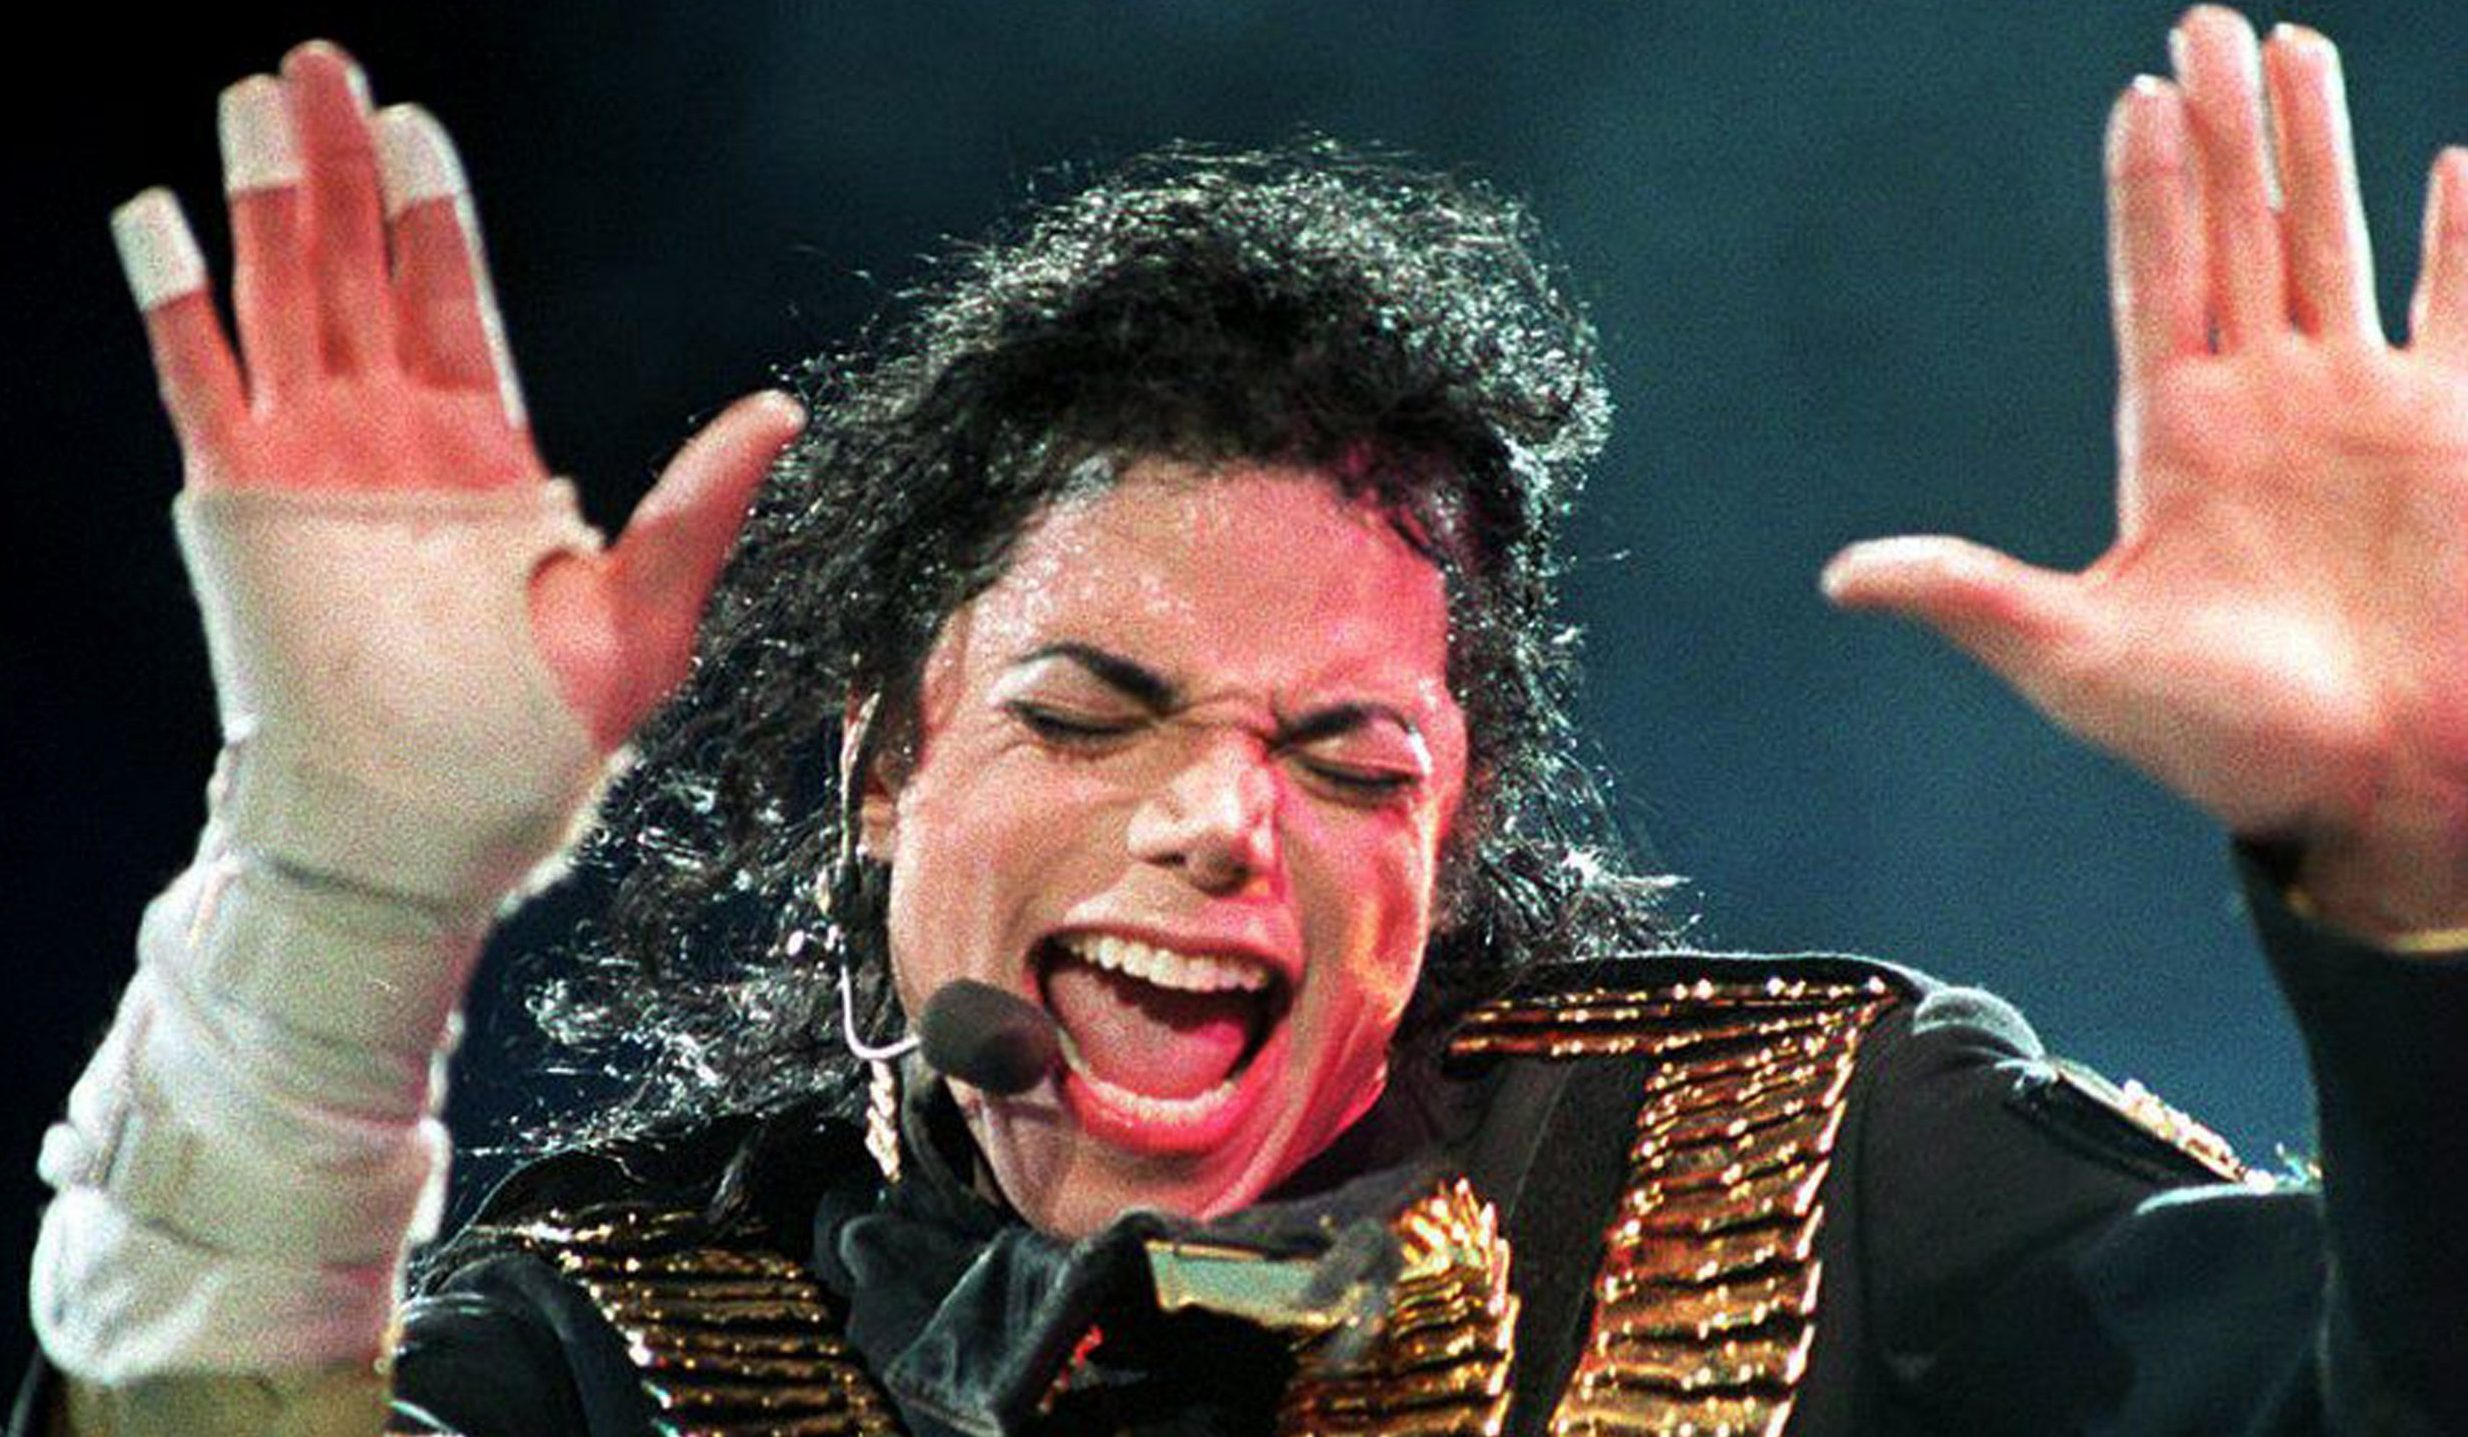 Sales and streaming of Michael Jackson's music take a hit after Leaving Neverland airs